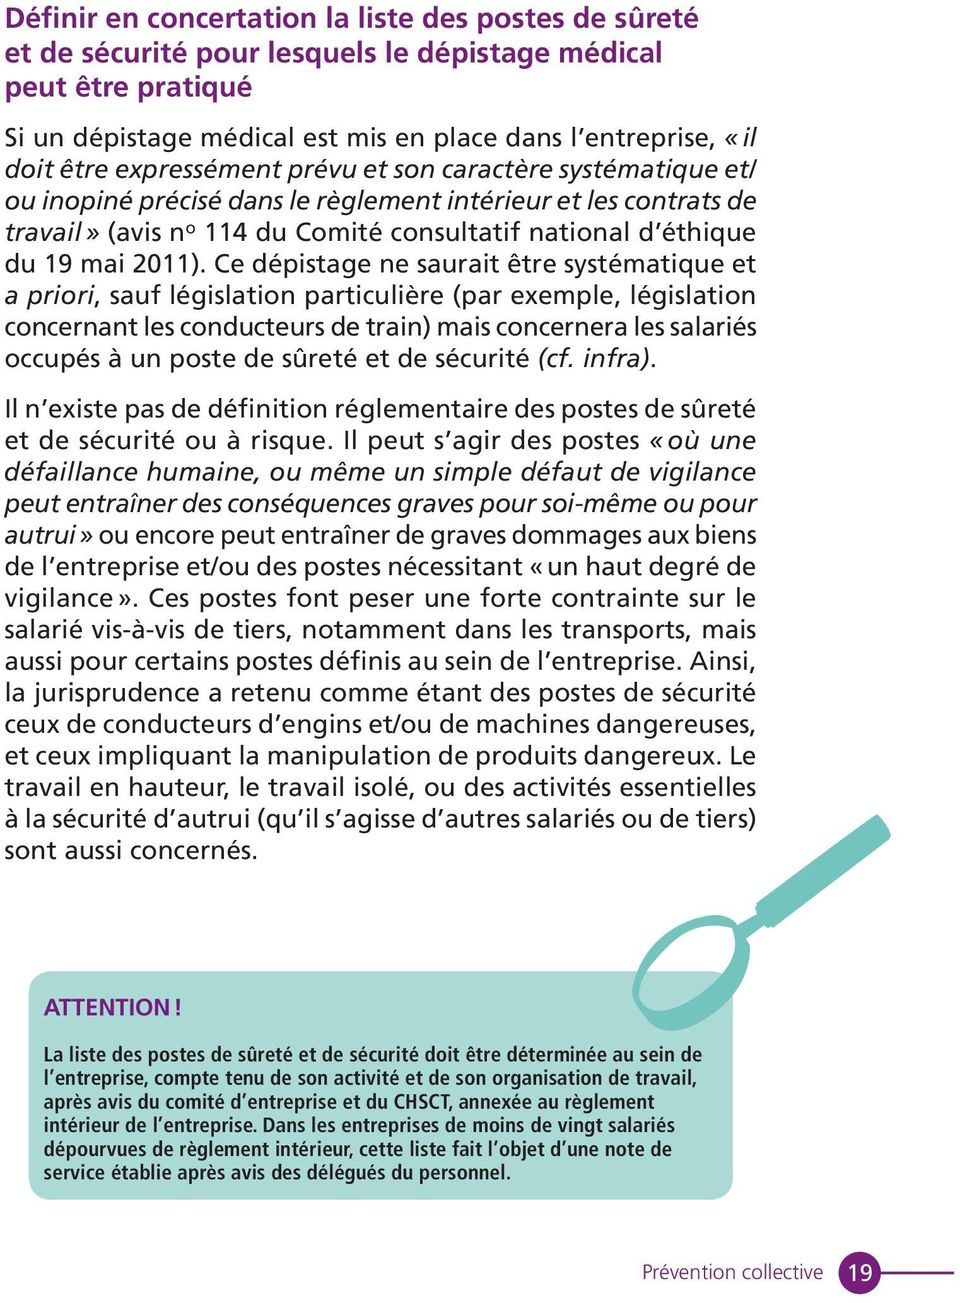 Guide pratique rep res pour une politique de pr vention for Definition du reglement interieur